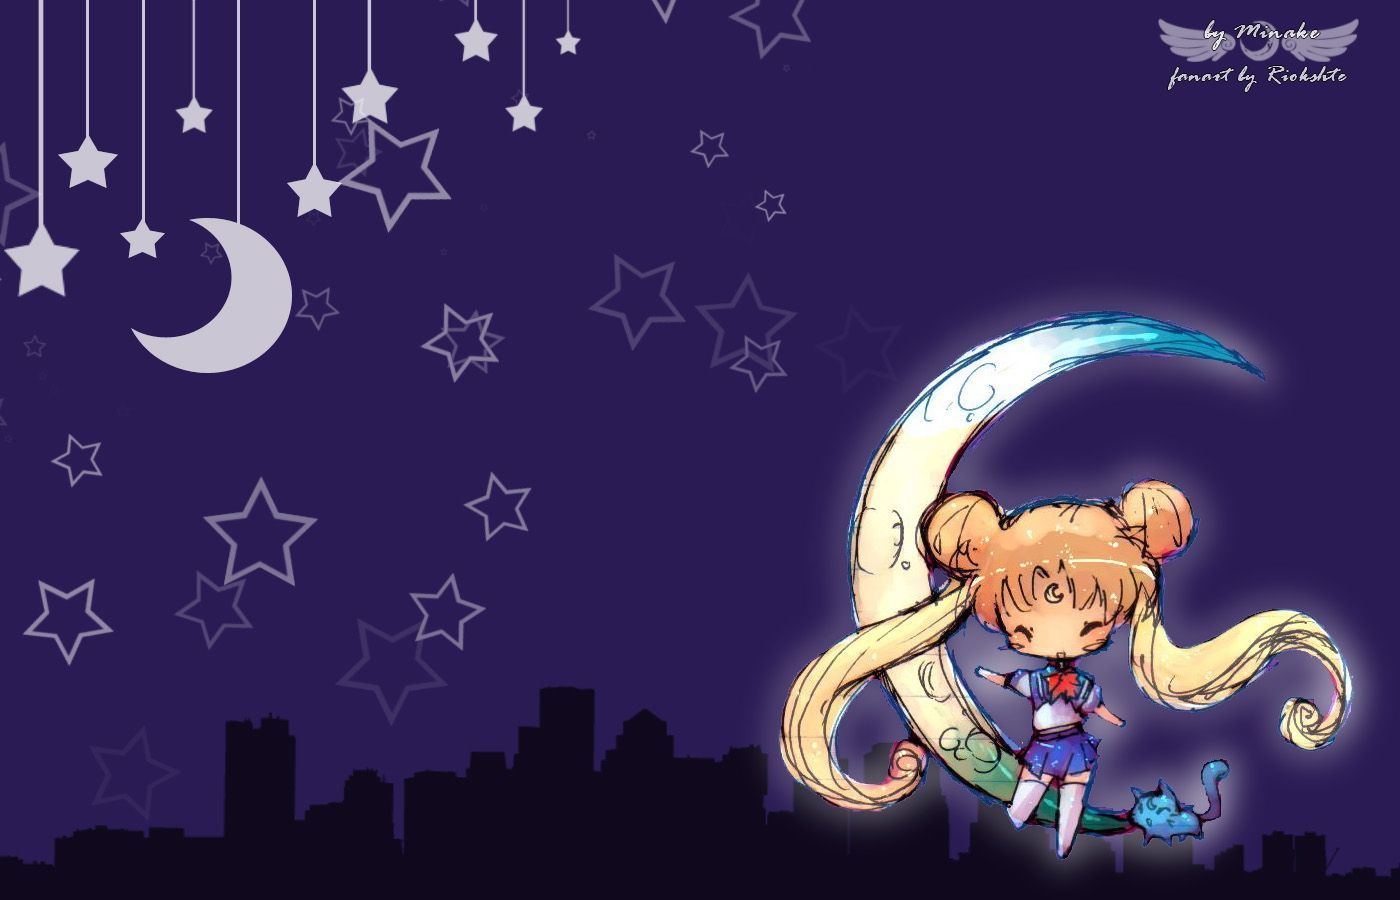 1400x900 Sailor Moon Chibi Desktop HD Wallpaper | AWWWWW!!!!! | Pinterest ...